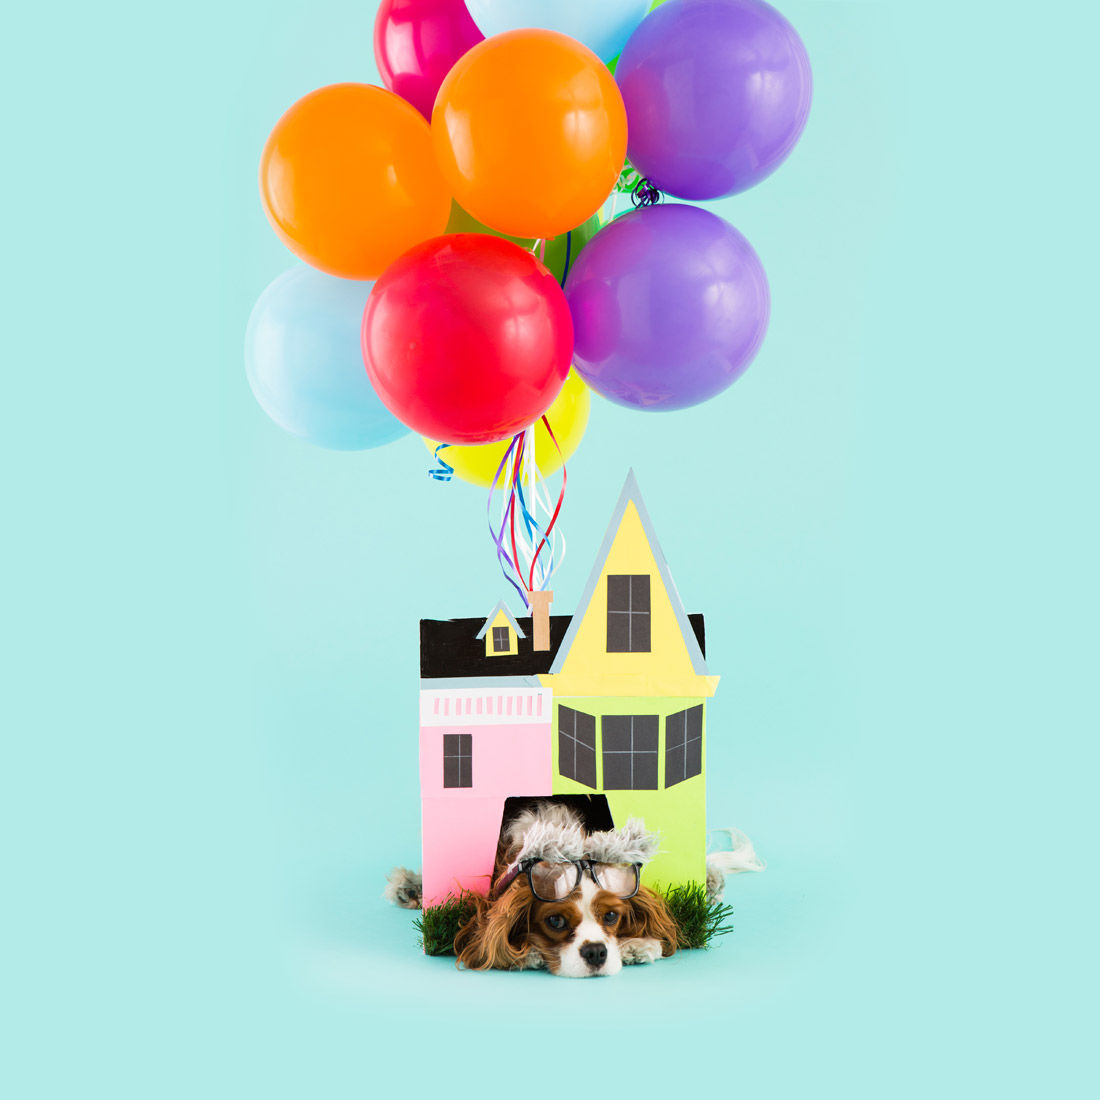 Up House Dog Costume  sc 1 st  LoveThisPic & Up House Dog Costume Pictures Photos and Images for Facebook ...